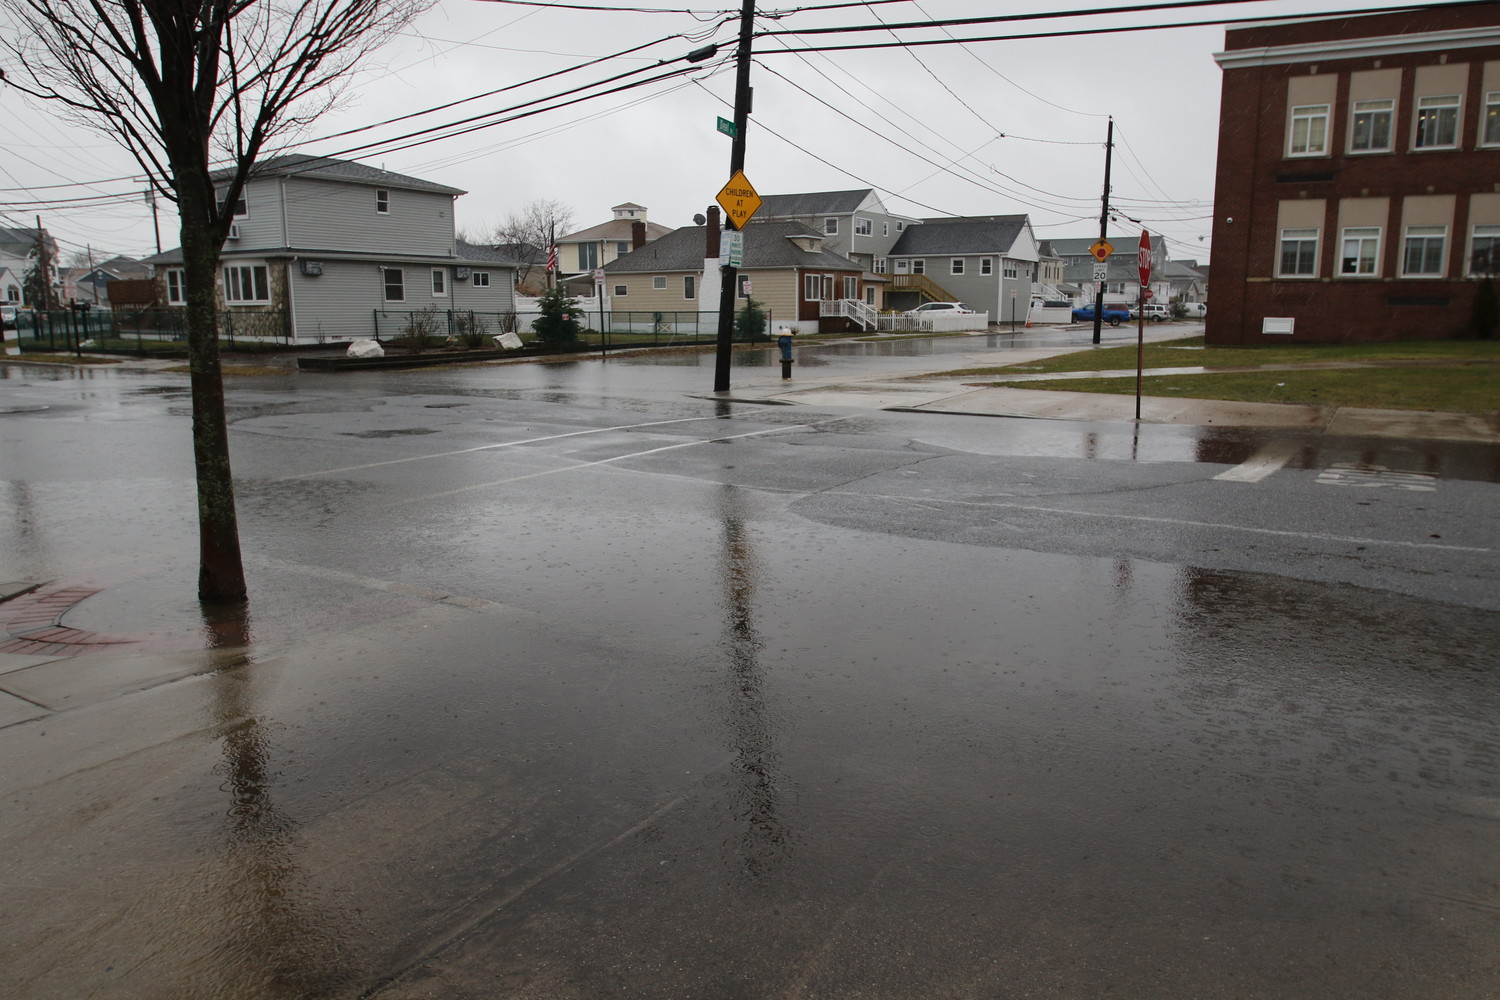 In extreme cases, a high tide can cause water to reach the doorway of the Francis Hegarty Elementary School. Issues with flooding throughout Island Park will be handled by a Federal Emergency Management Agency-funded flood mitigation project, which will soon enter its second of three phases.